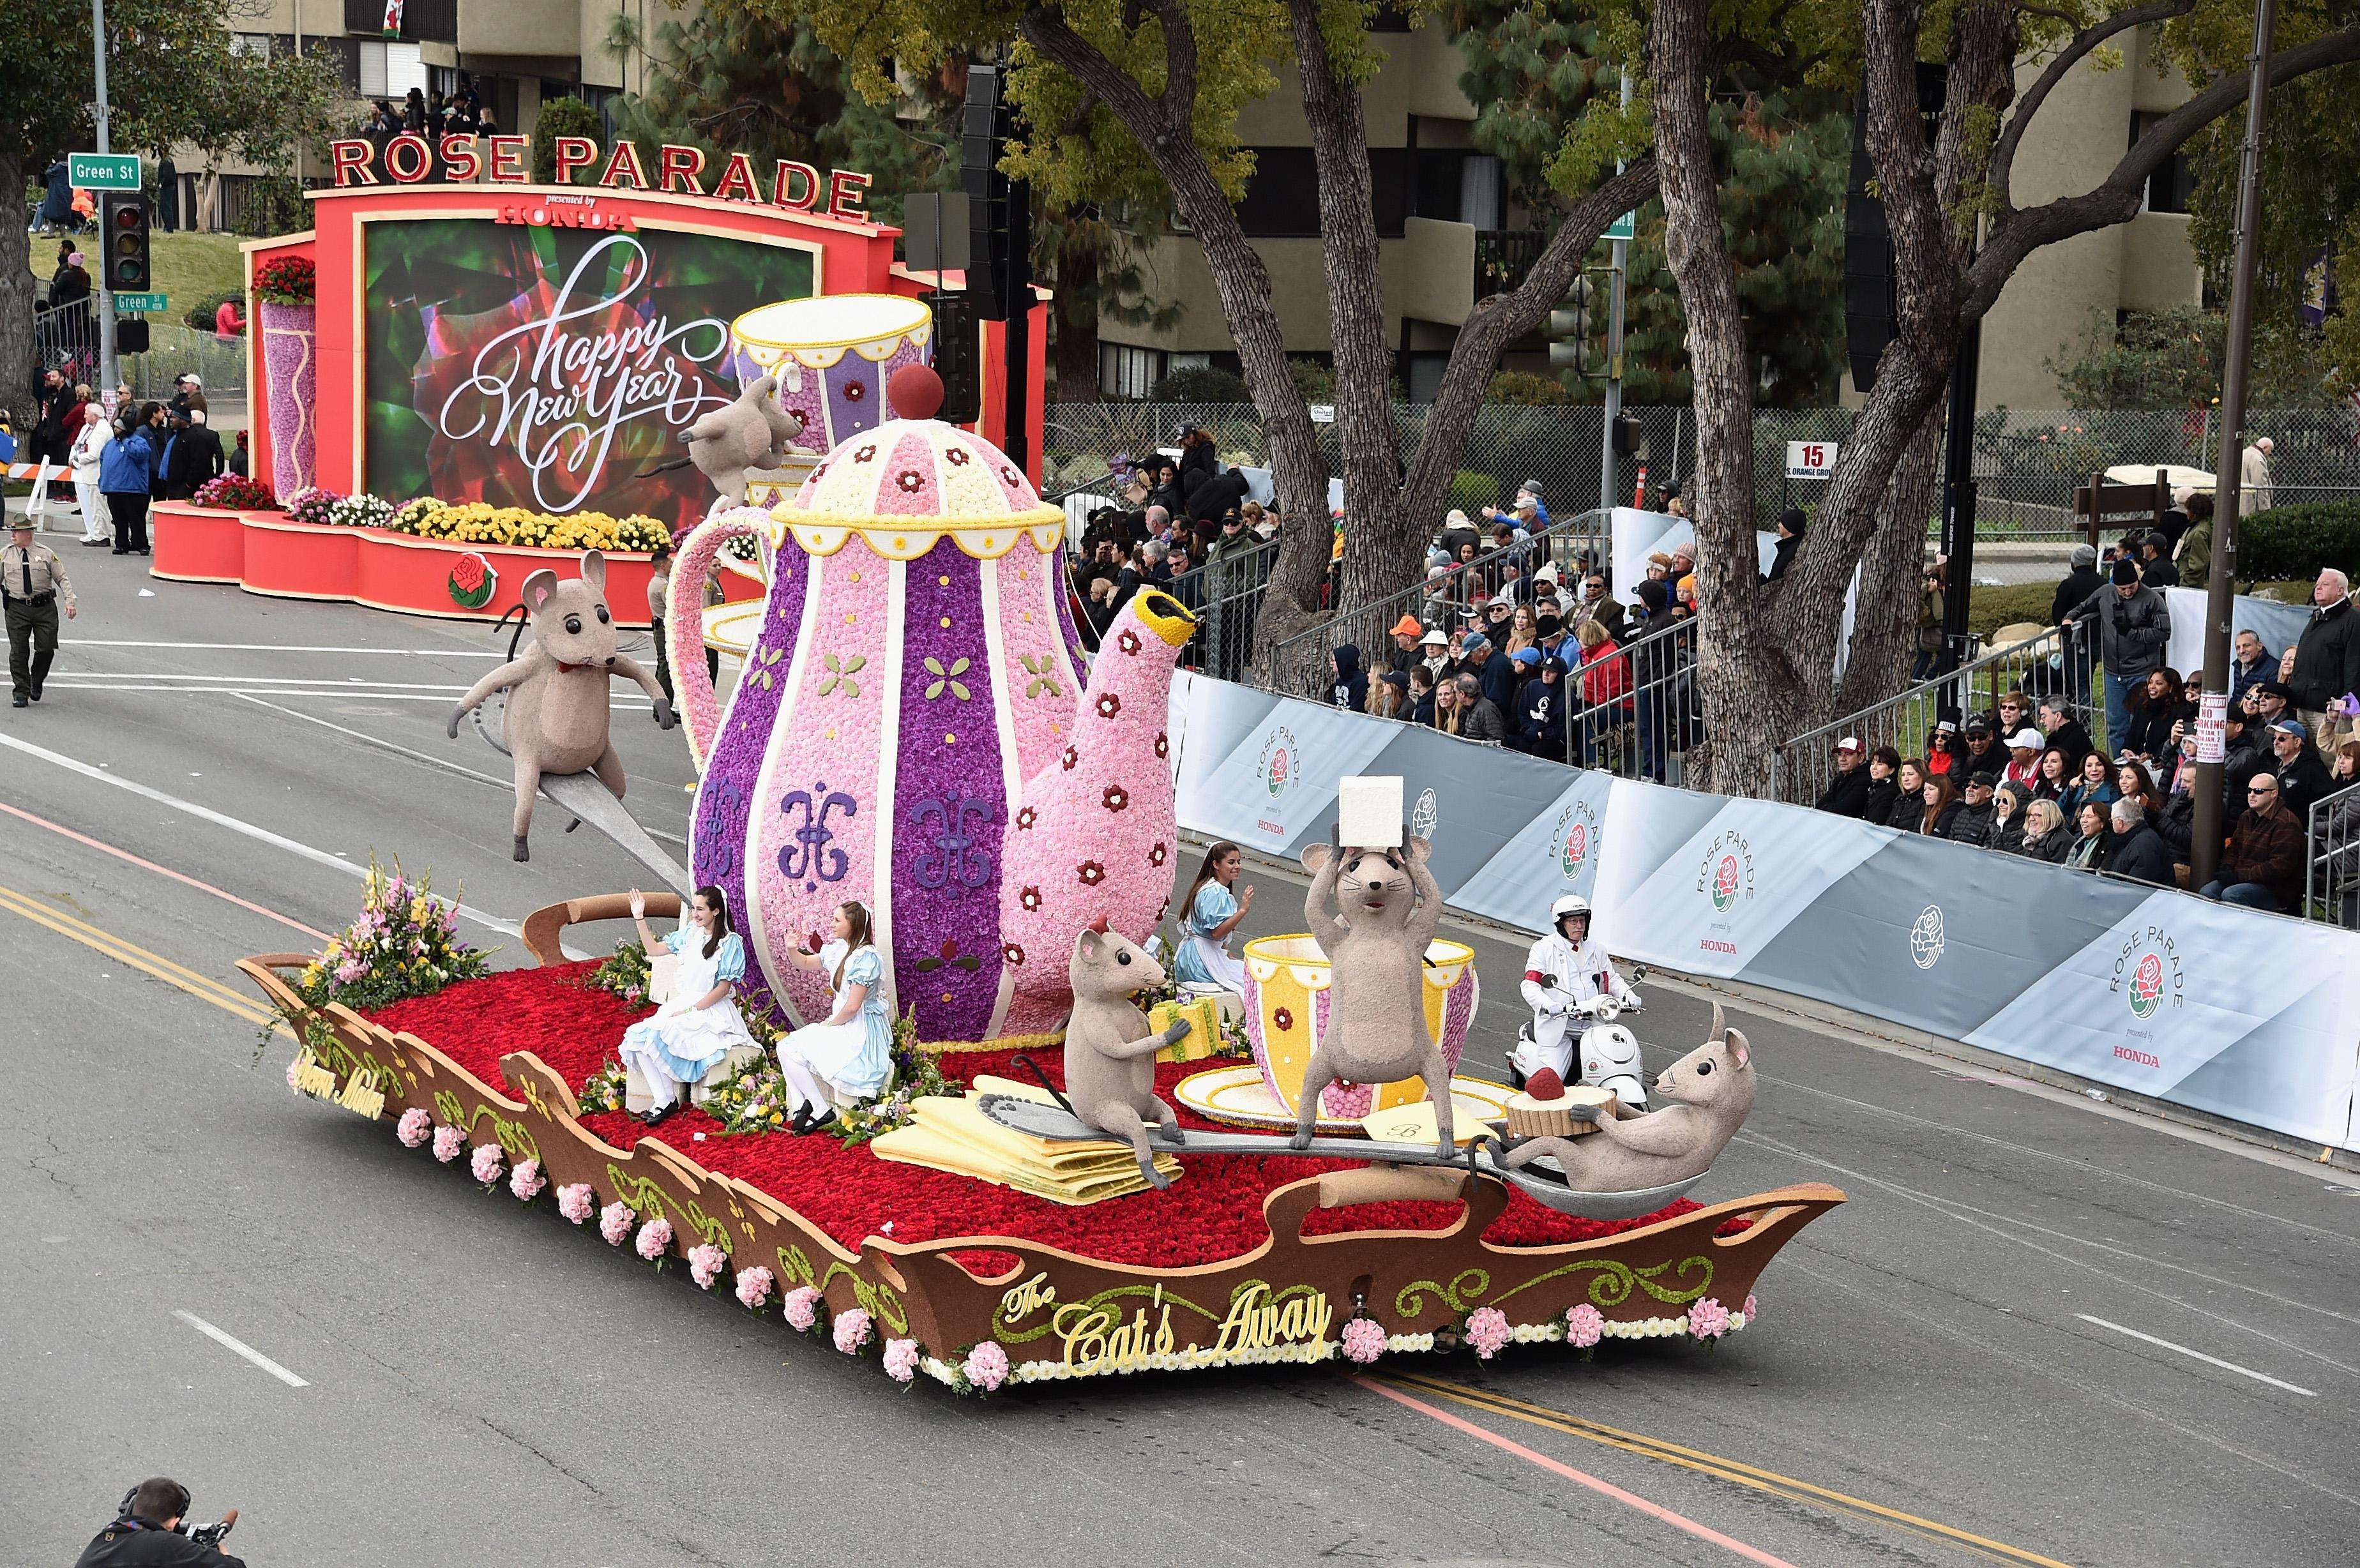 Rose Parade Route in Photos